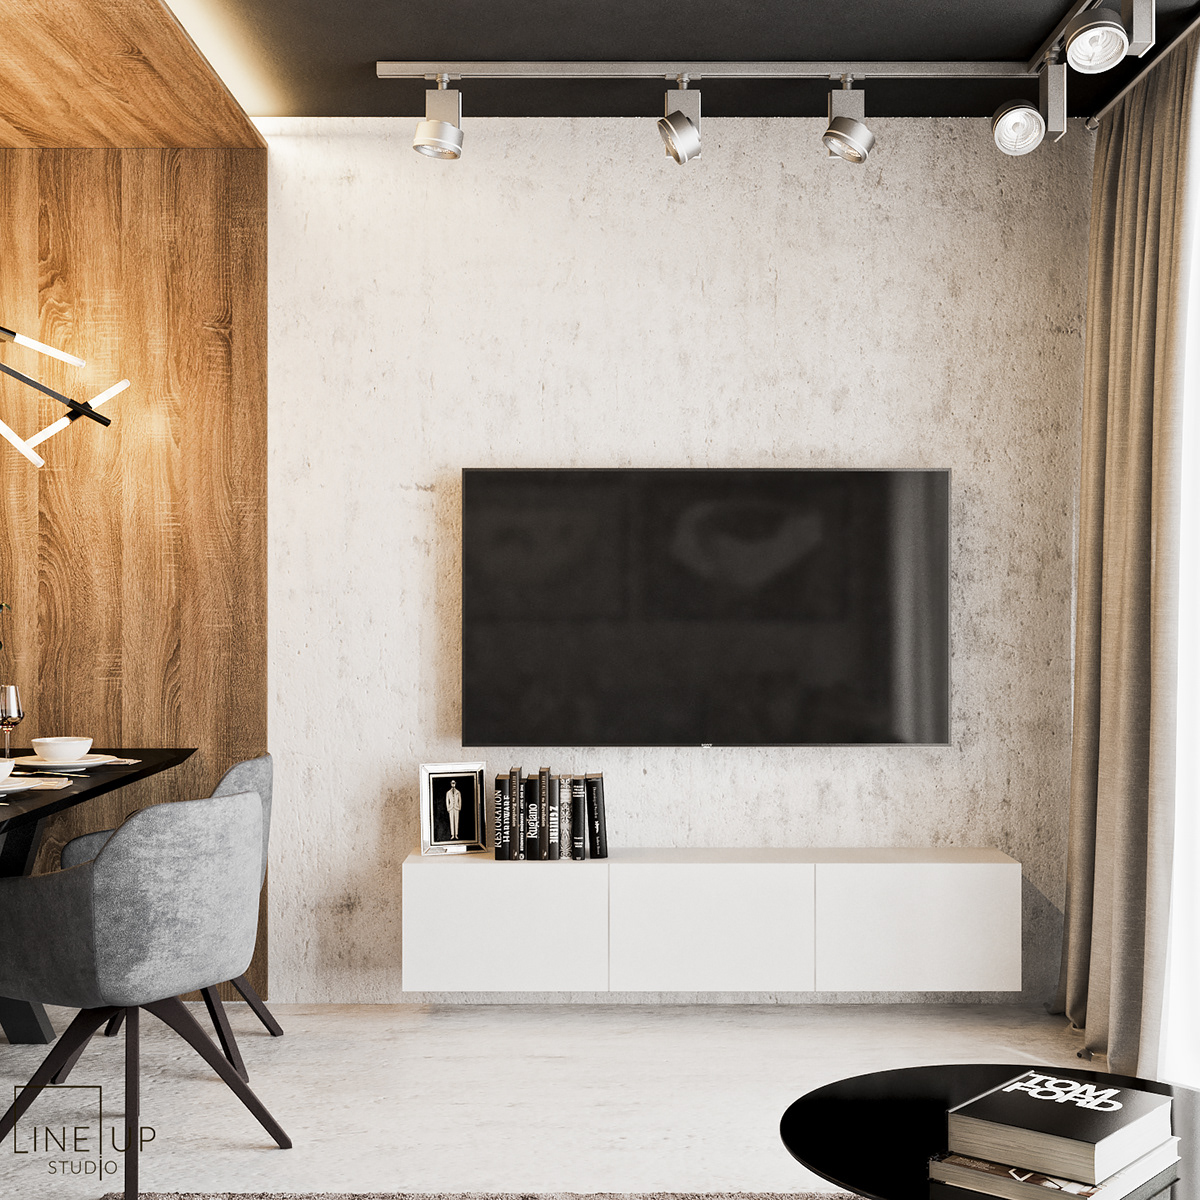 Project apartment cracow krakow 3dsmax vray design